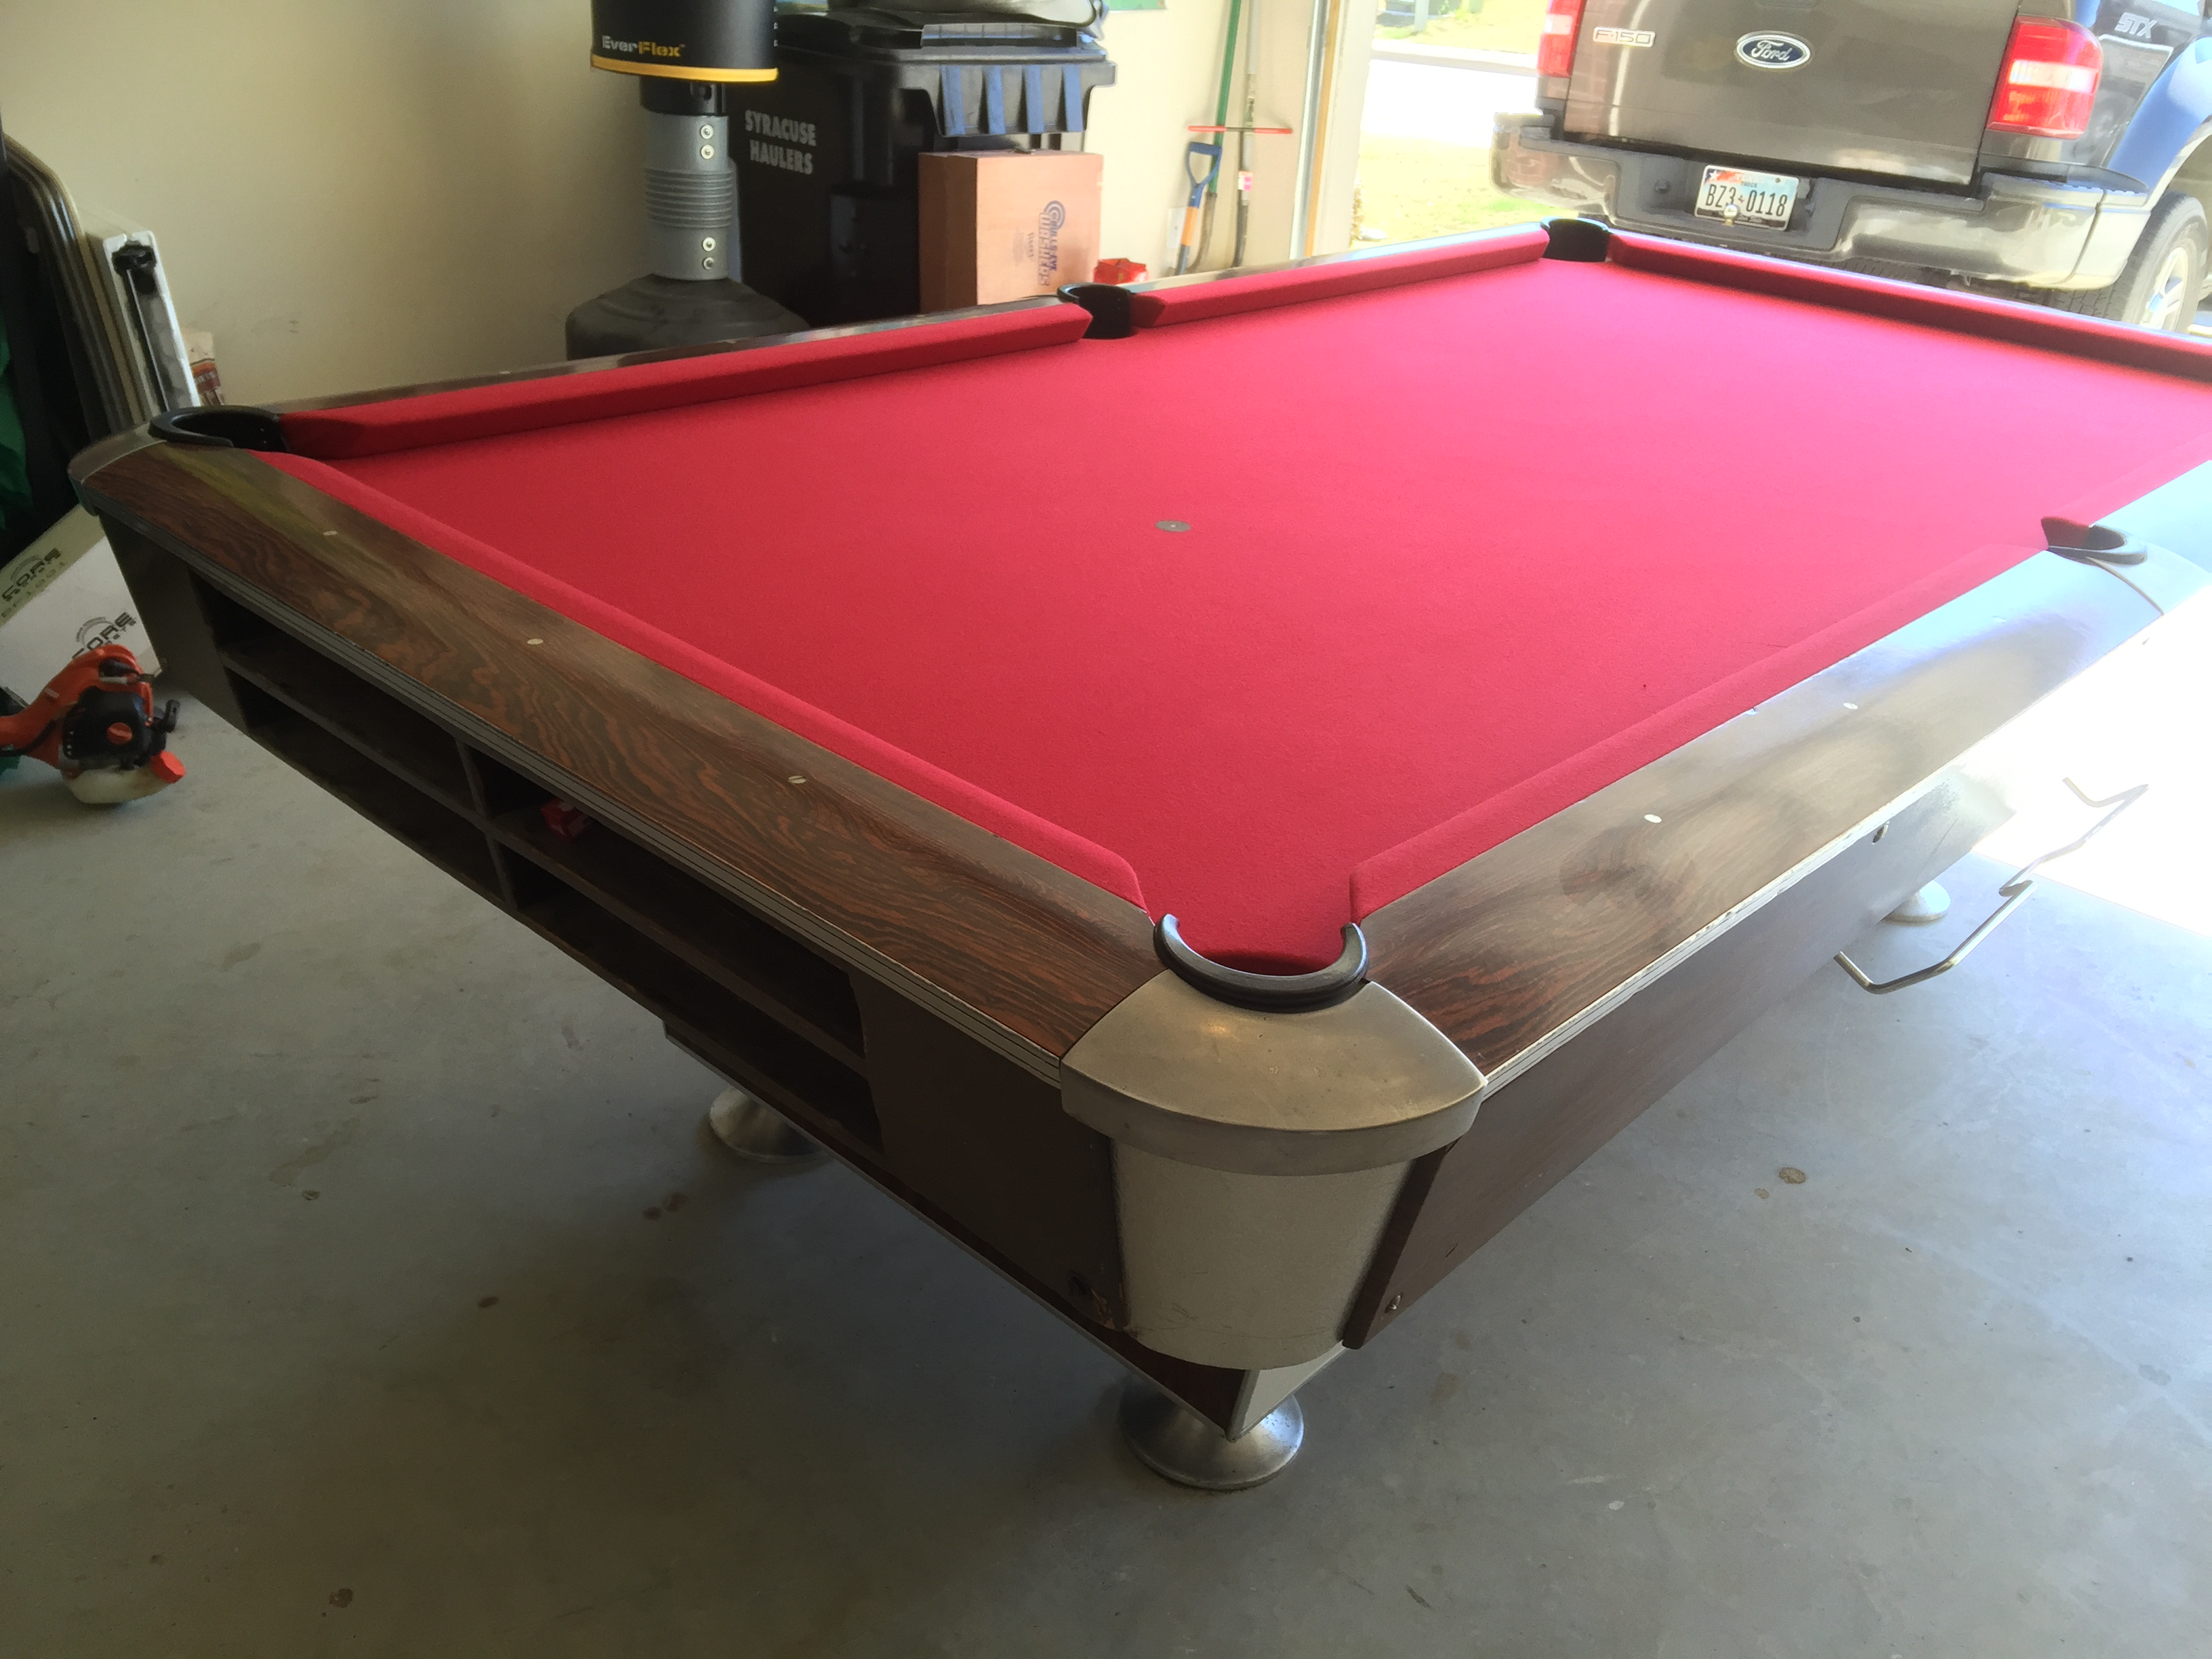 Topline Commercial 8 Foot Pool Table   $1,695   On Sale For $1,595